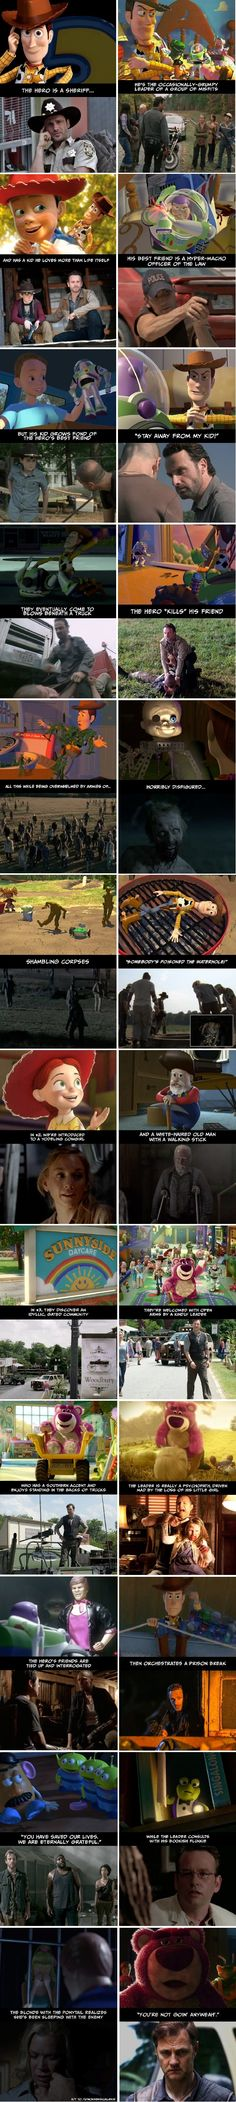 "Undeniable Proof That ""The Walking Dead"" And ""Toy Story"" Have The Exact Same Plot"